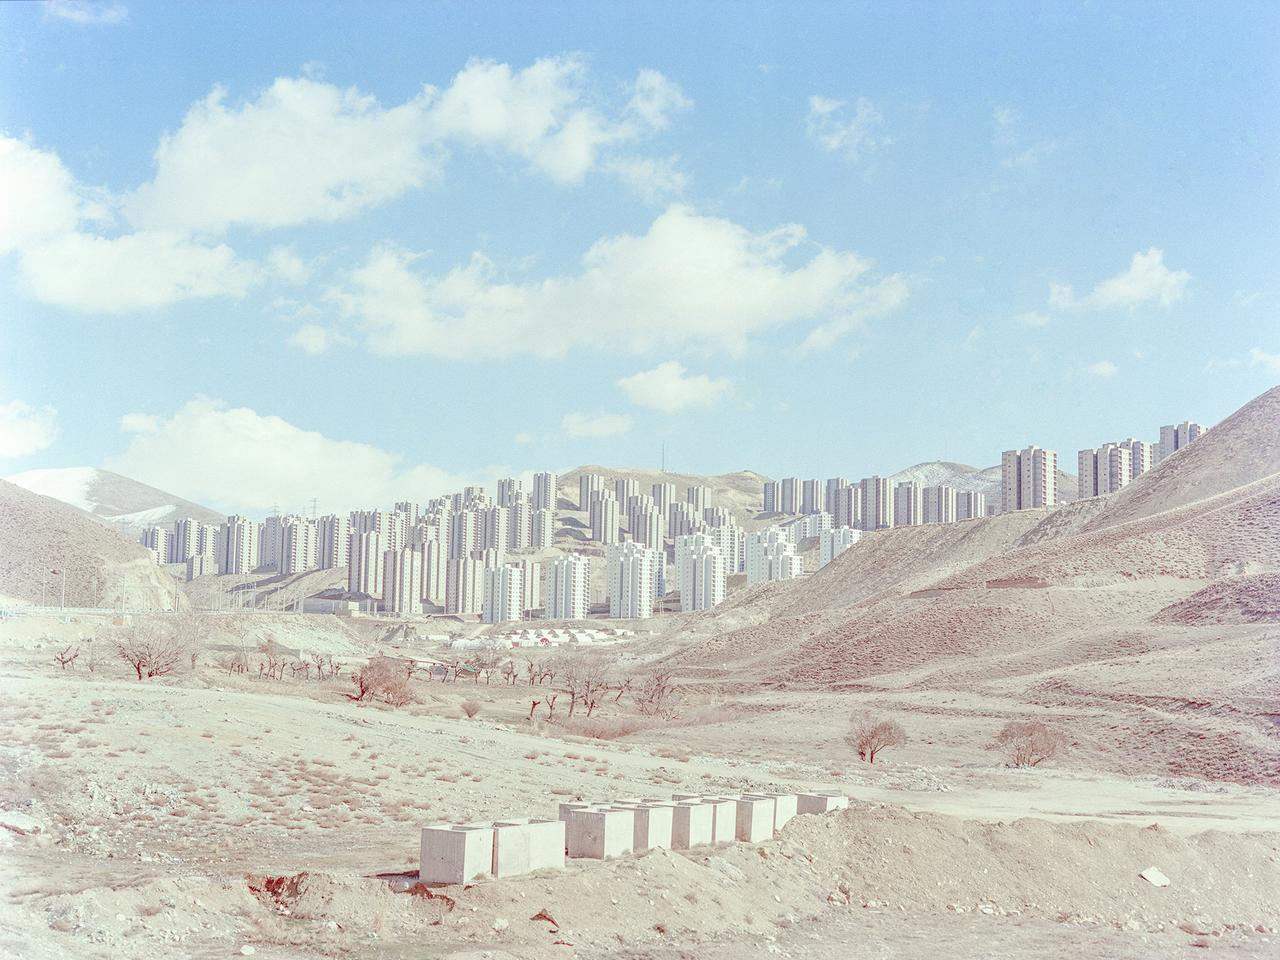 A view of                             half-constructed buildings in the new town                             of Pardis. Pardis is located 17 km northeast                             of Tehran province, Iran